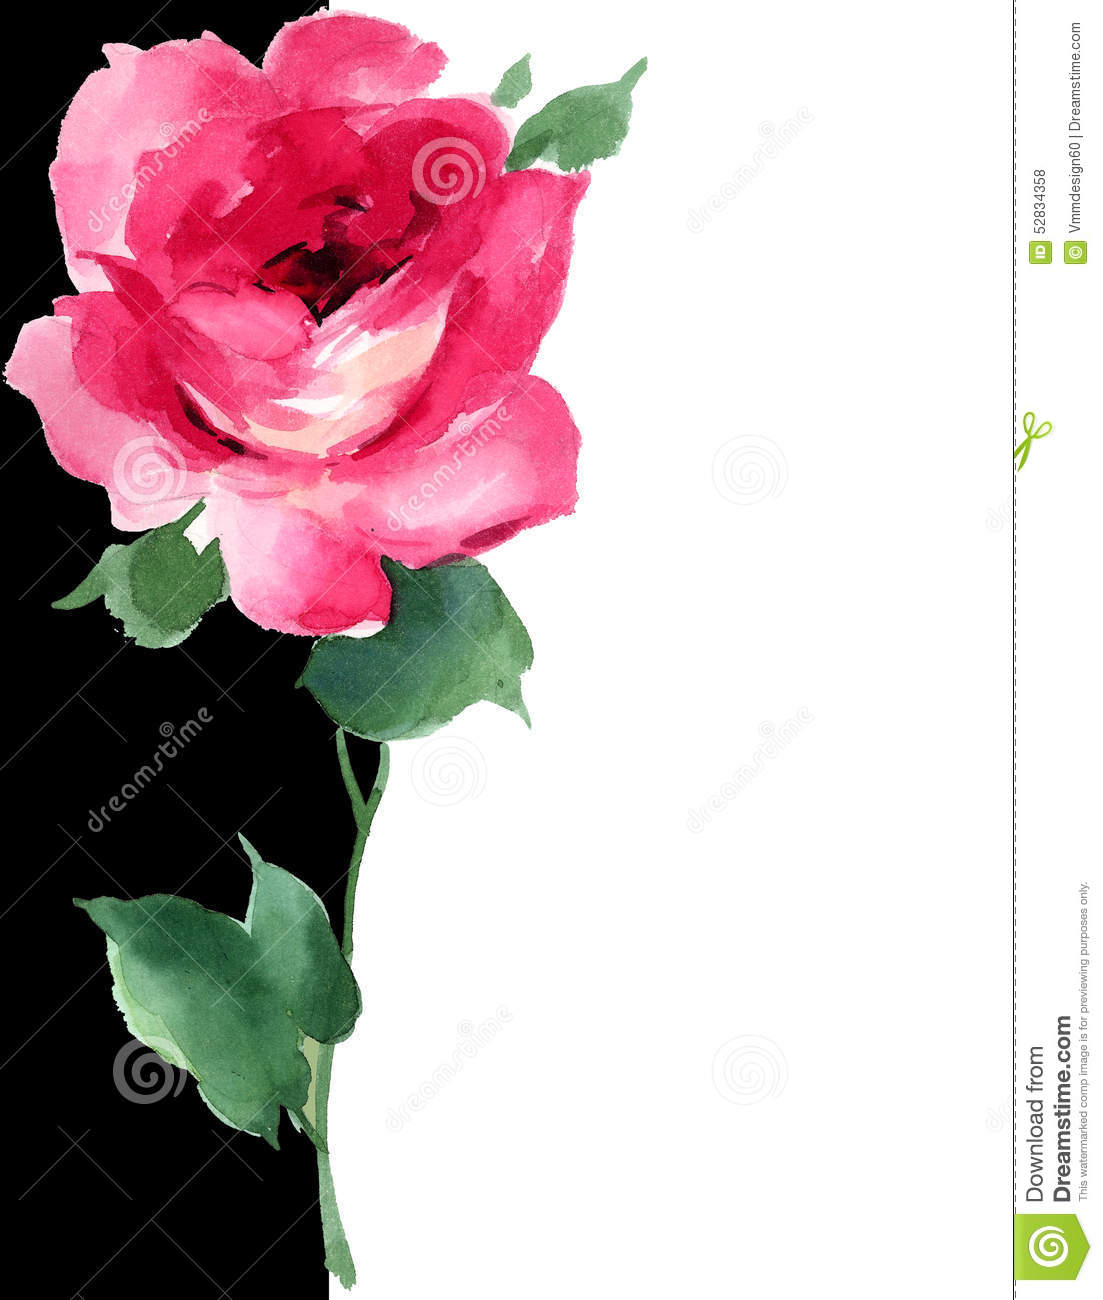 Watercolor Red Rose Floral Painting Art Deco Black And White